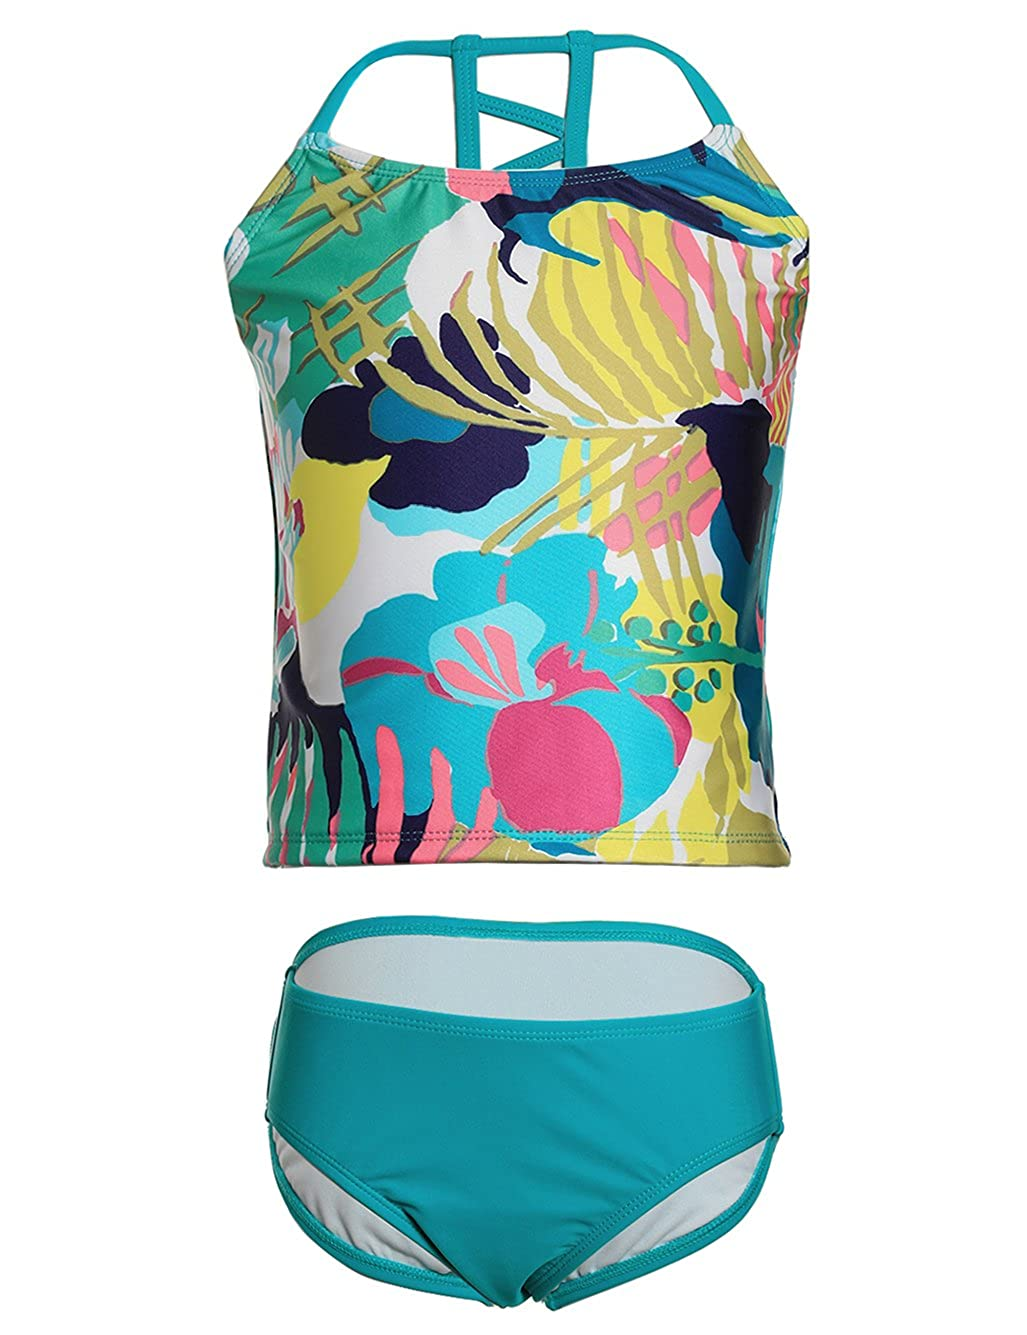 LEINASEN Two Piece Bathing Suits for Girls, Colorful Floral Printing T-Back Beach Tankini Swimsuits for Kids